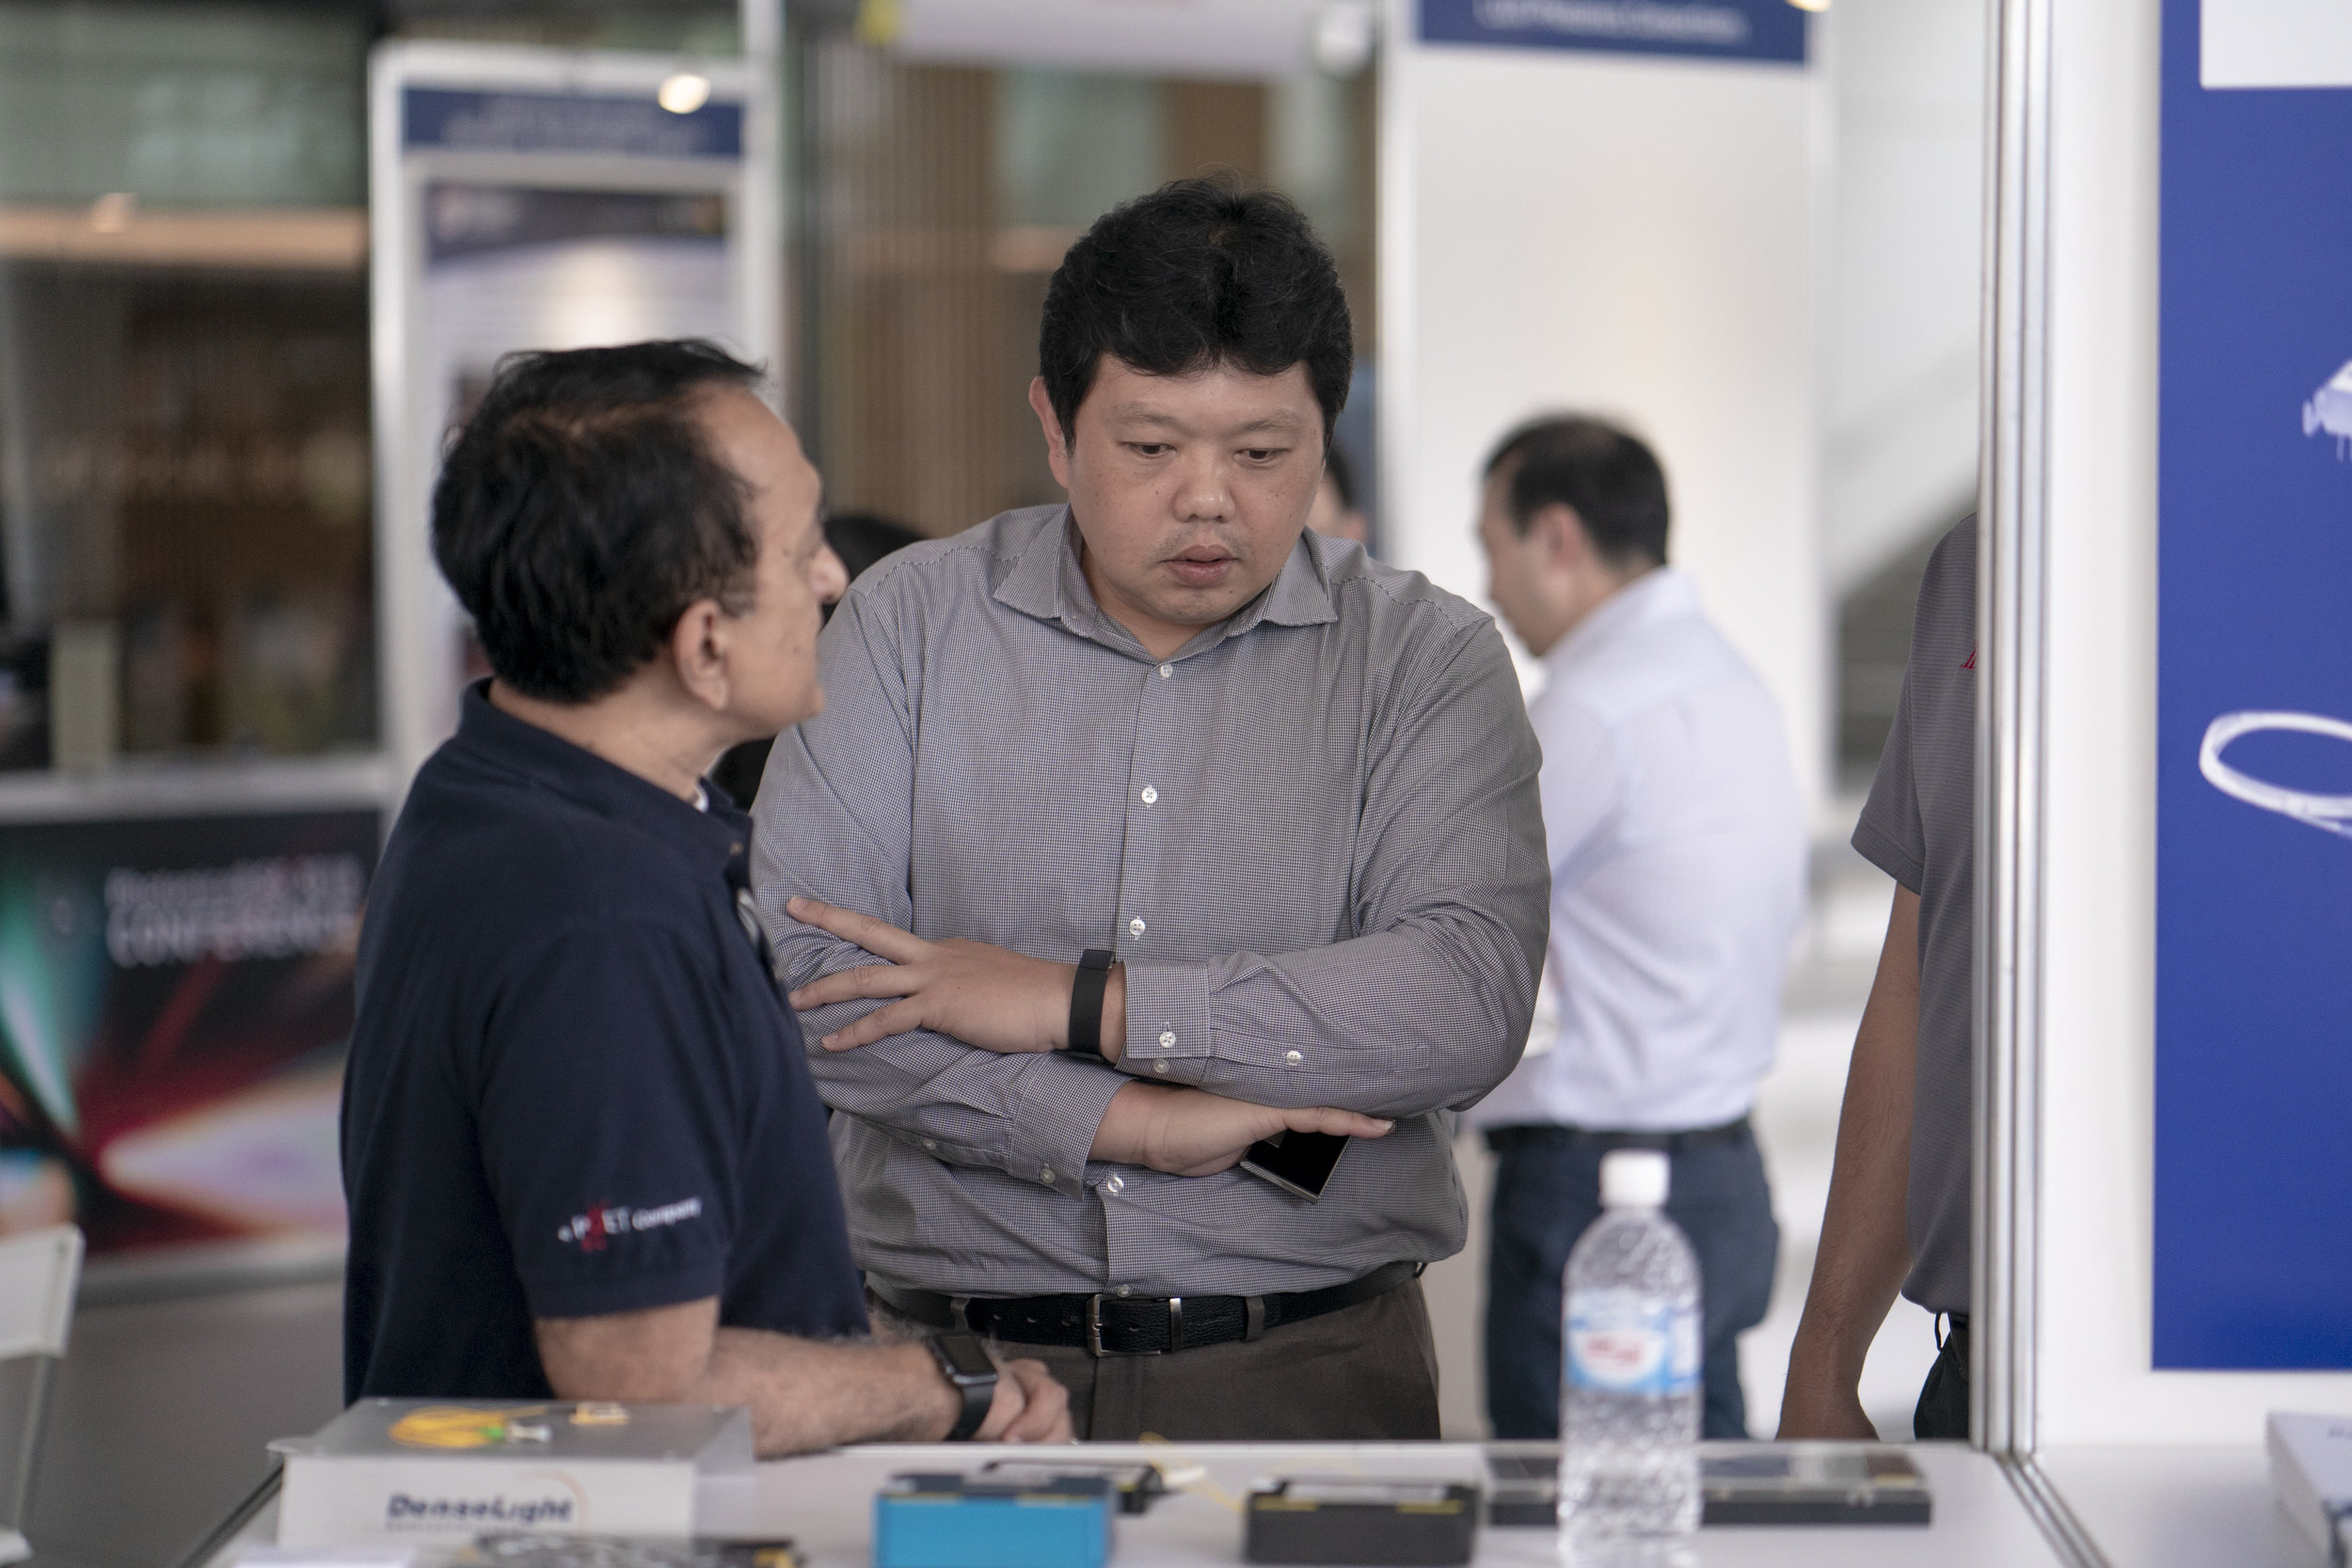 TPI Photonics SG 2018 Conference n Exhibition 0302rc.jpg